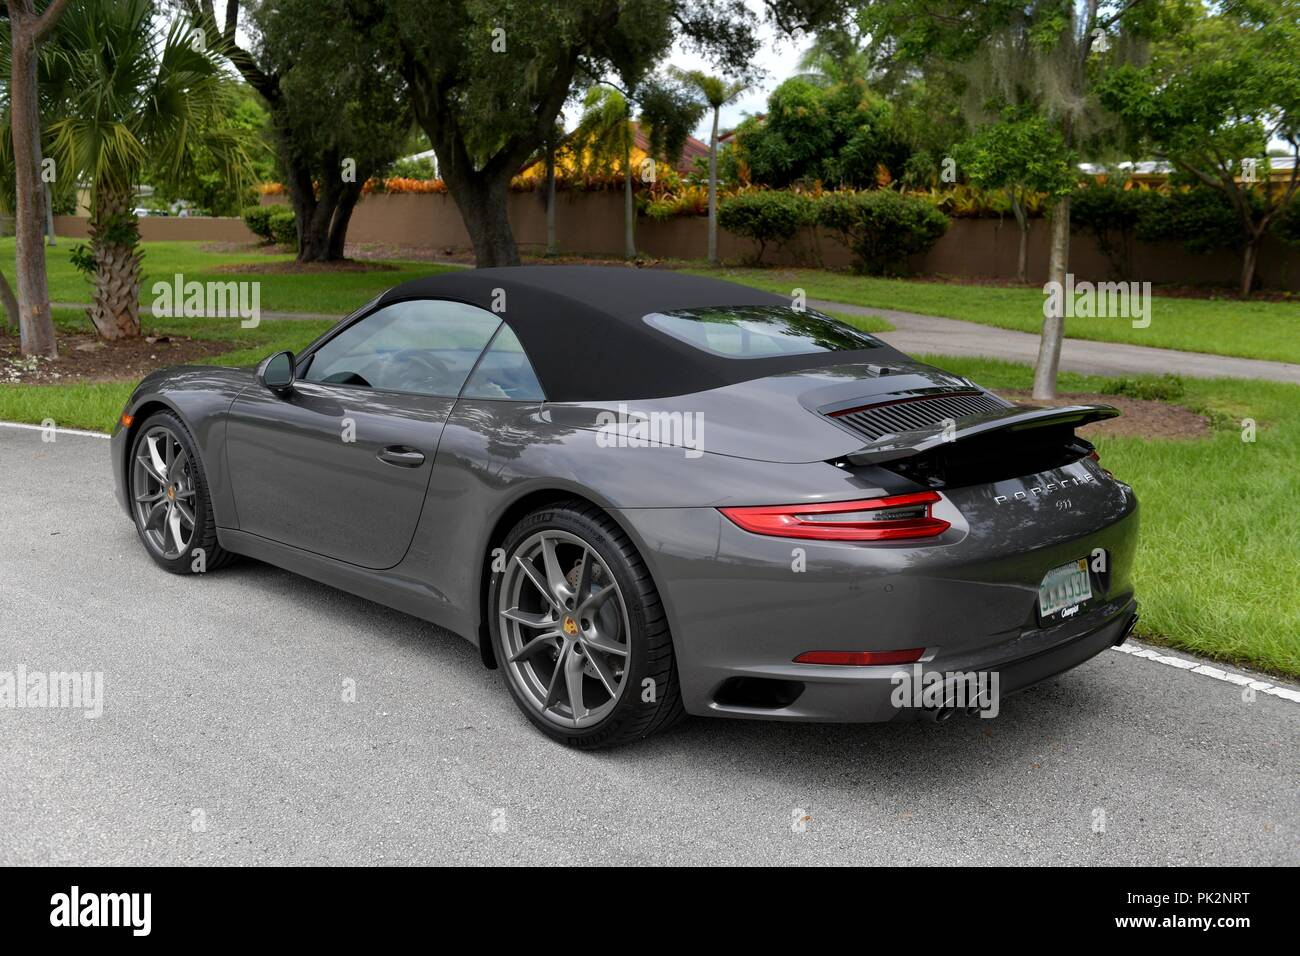 Porsche Dealers South Florida >> Miami Fl September 11 First Pictures Of The Porsche 2019 911